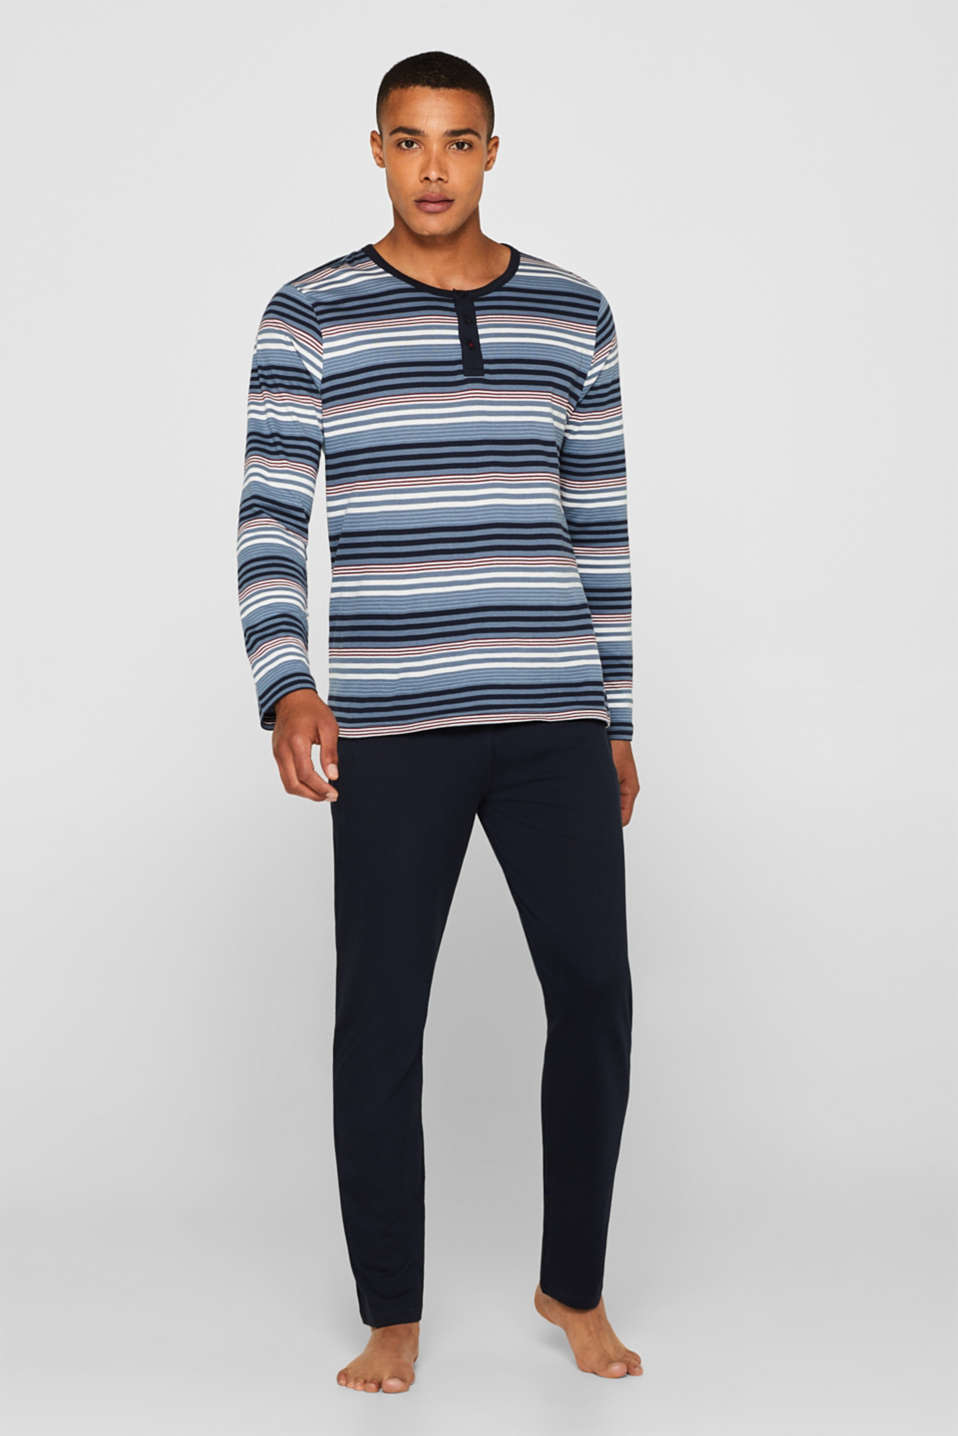 Esprit - Striped jersey pyjamas, 100% cotton